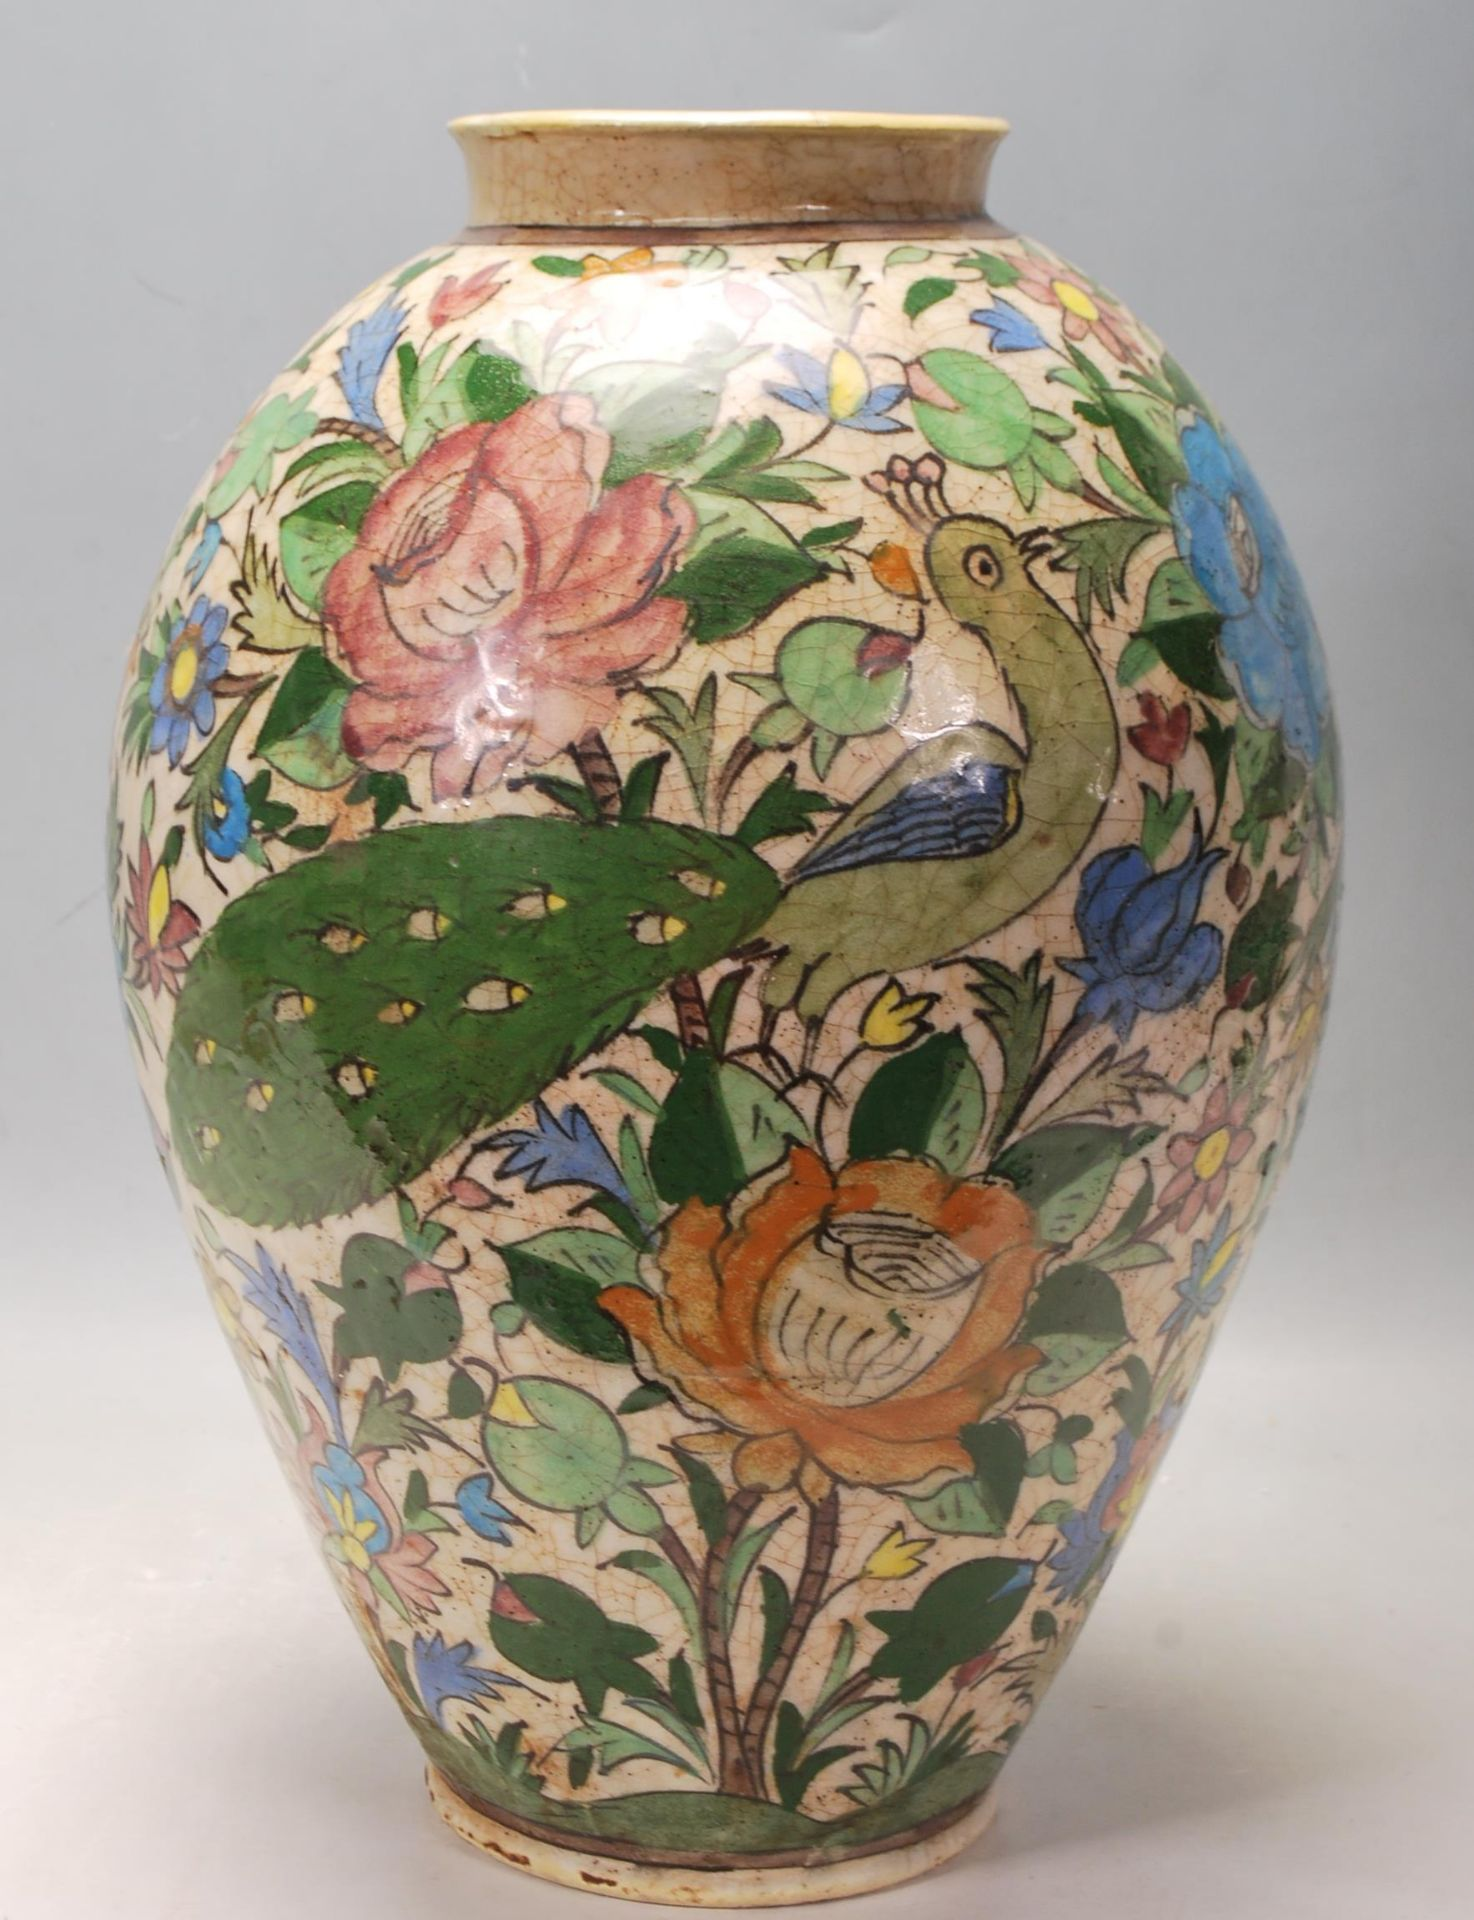 LATE 20TH CENTURY PERSIAN ISLAMIC VASE WITH POLYCHROME DECORATION - Image 3 of 7